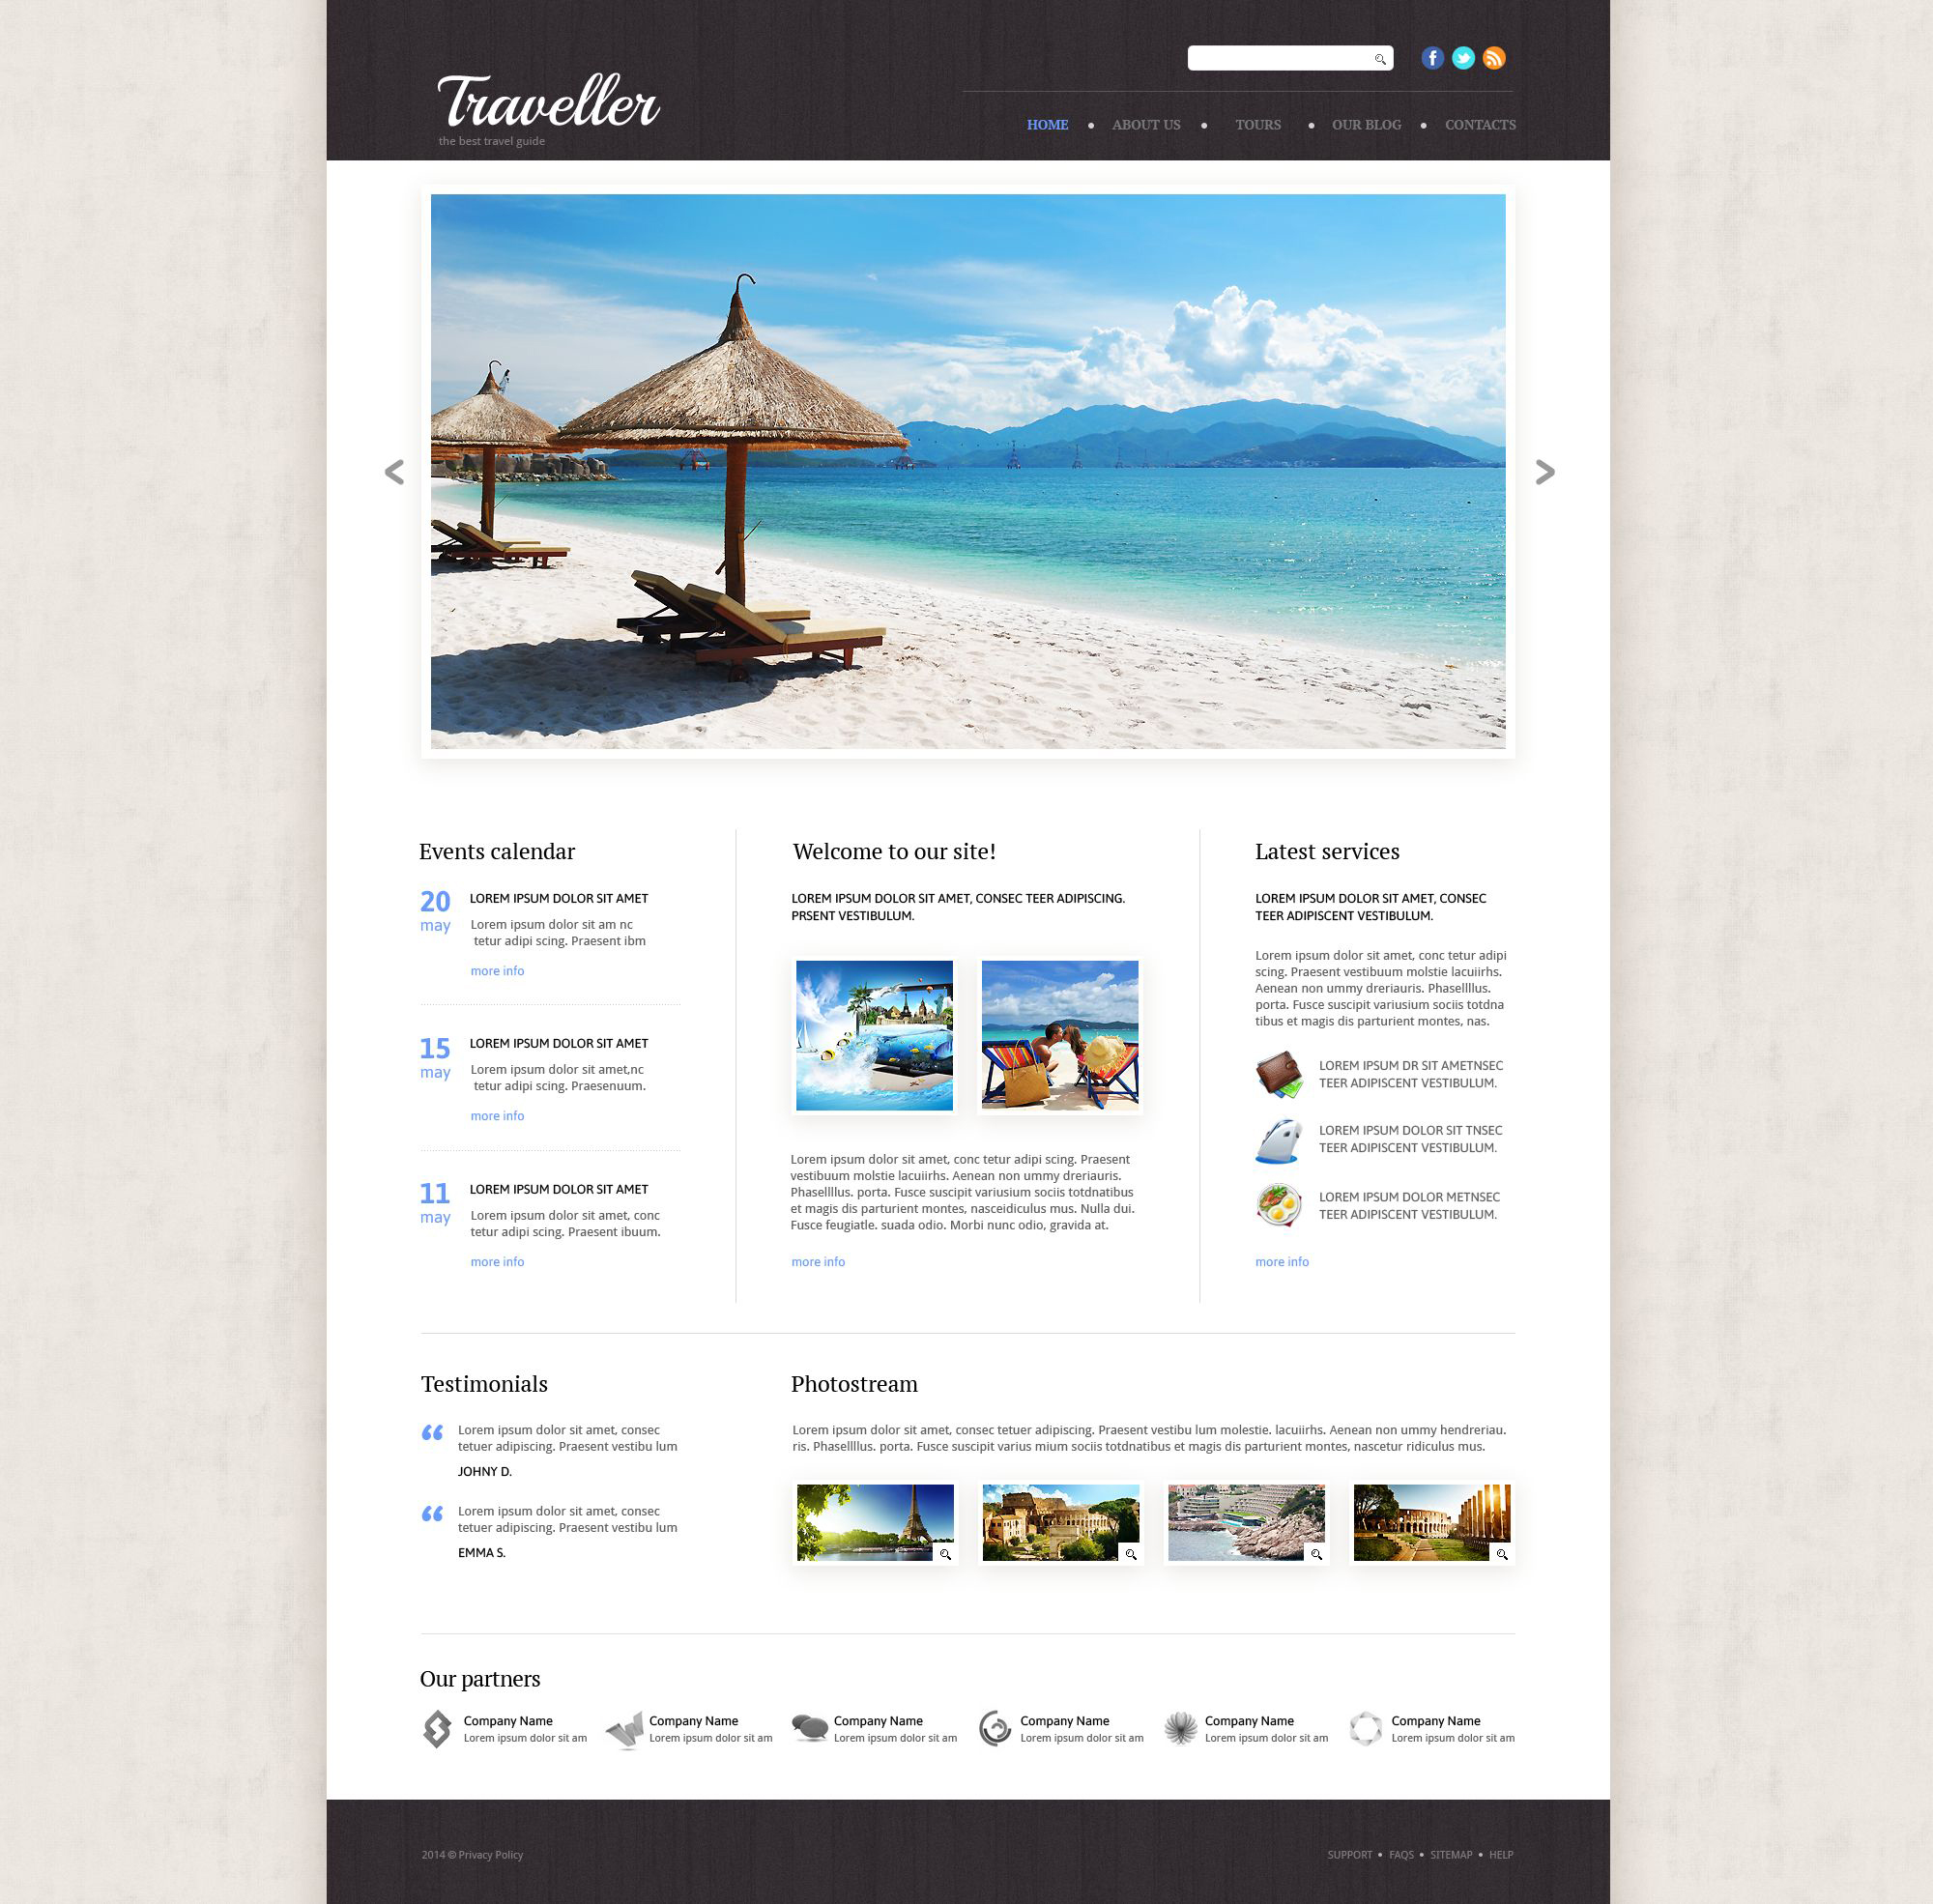 The Travel Agency Responsive Javascript Animated Design 53865, one of the best website templates of its kind (travel, most popular), also known as travel agency website template, compass website template, tour country website template, resort website template, spa website template, flight hotel website template, car website template, rental website template, cruise website template, sights website template, reservation website template, location website template, authorization website template, ticket website template, guide website template, beach website template, sea website template, relaxation website template, recreation website template, impression website template, air website template, liner website template, traveling website template, apartment website template, vacation website template, rest website template, comfort website template, destination website template, explorat and related with travel agency, compass, tour country, resort, spa, flight hotel, car, rental, cruise, sights, reservation, location, authorization, ticket, guide, beach, sea, relaxation, recreation, impression, air, liner, traveling, apartment, vacation, rest, comfort, destination, explorat, etc.